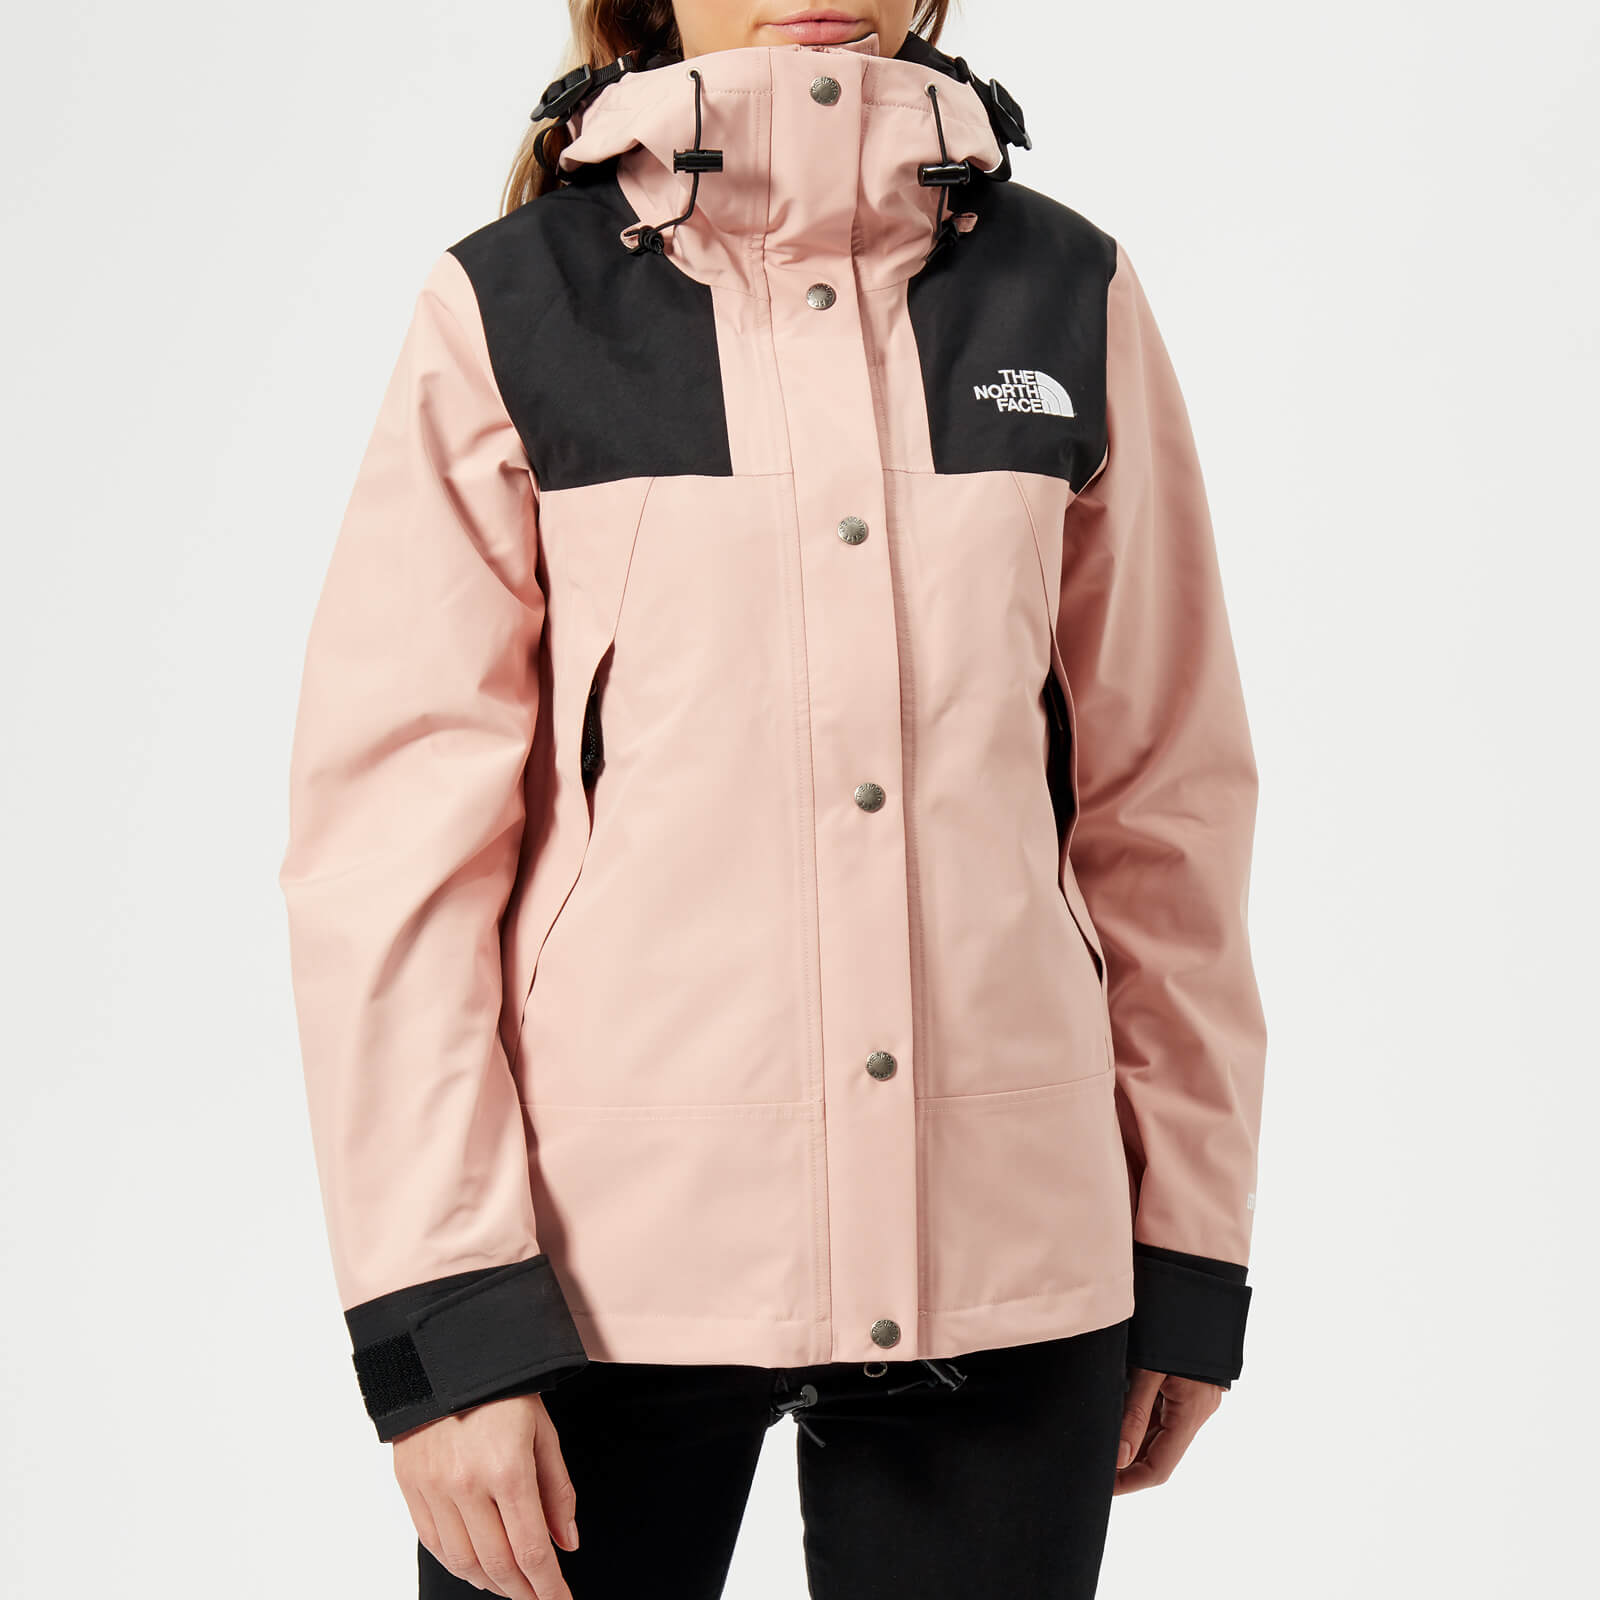 666d3f437a5144 The North Face Women's 1990 Mountain Gore-Tex Jacket - Misty Rose Womens  Clothing   TheHut.com